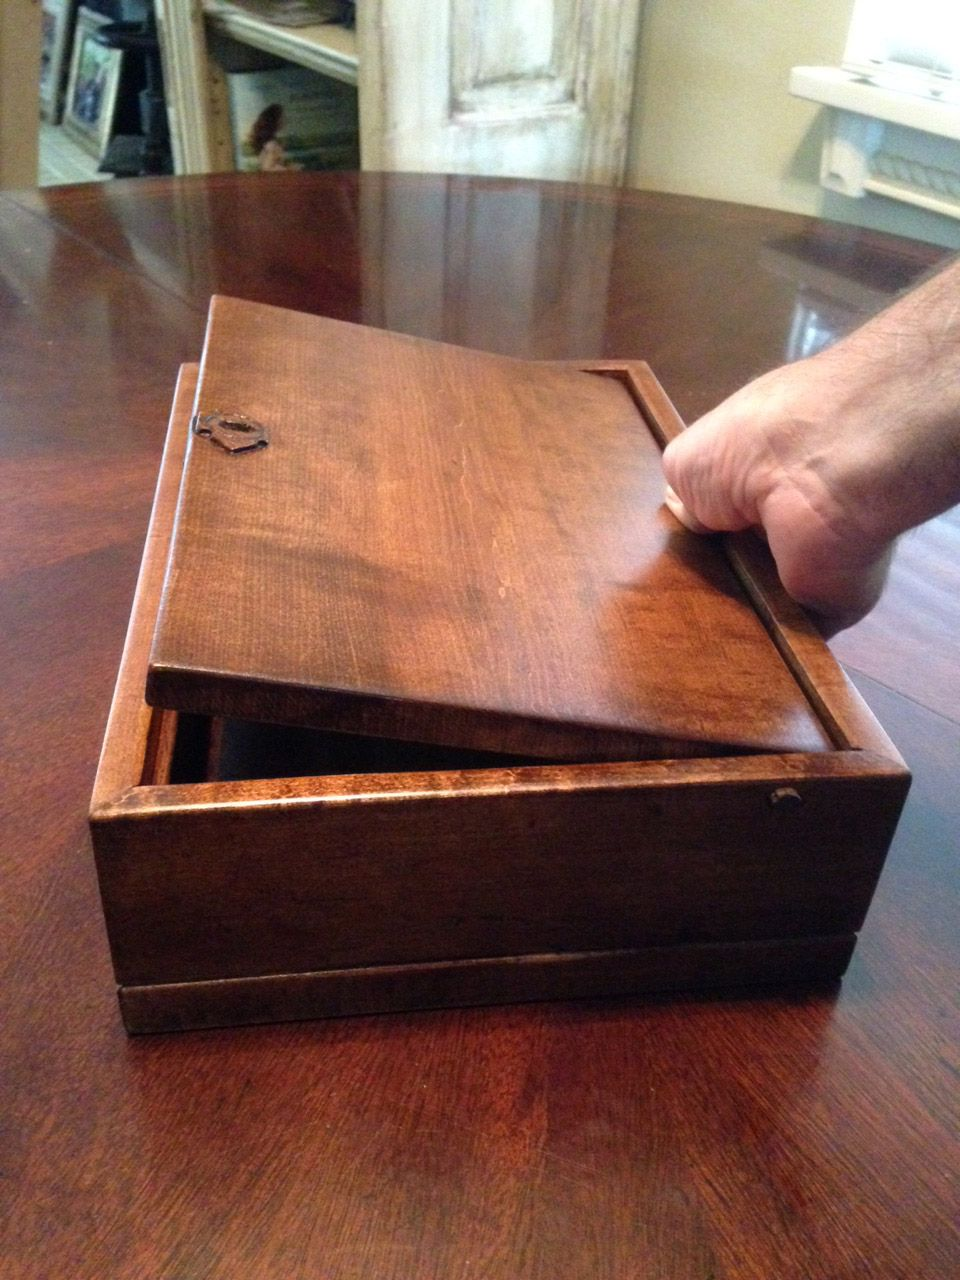 Wooden Box Lid Opening   woodshop   Small wooden boxes ...